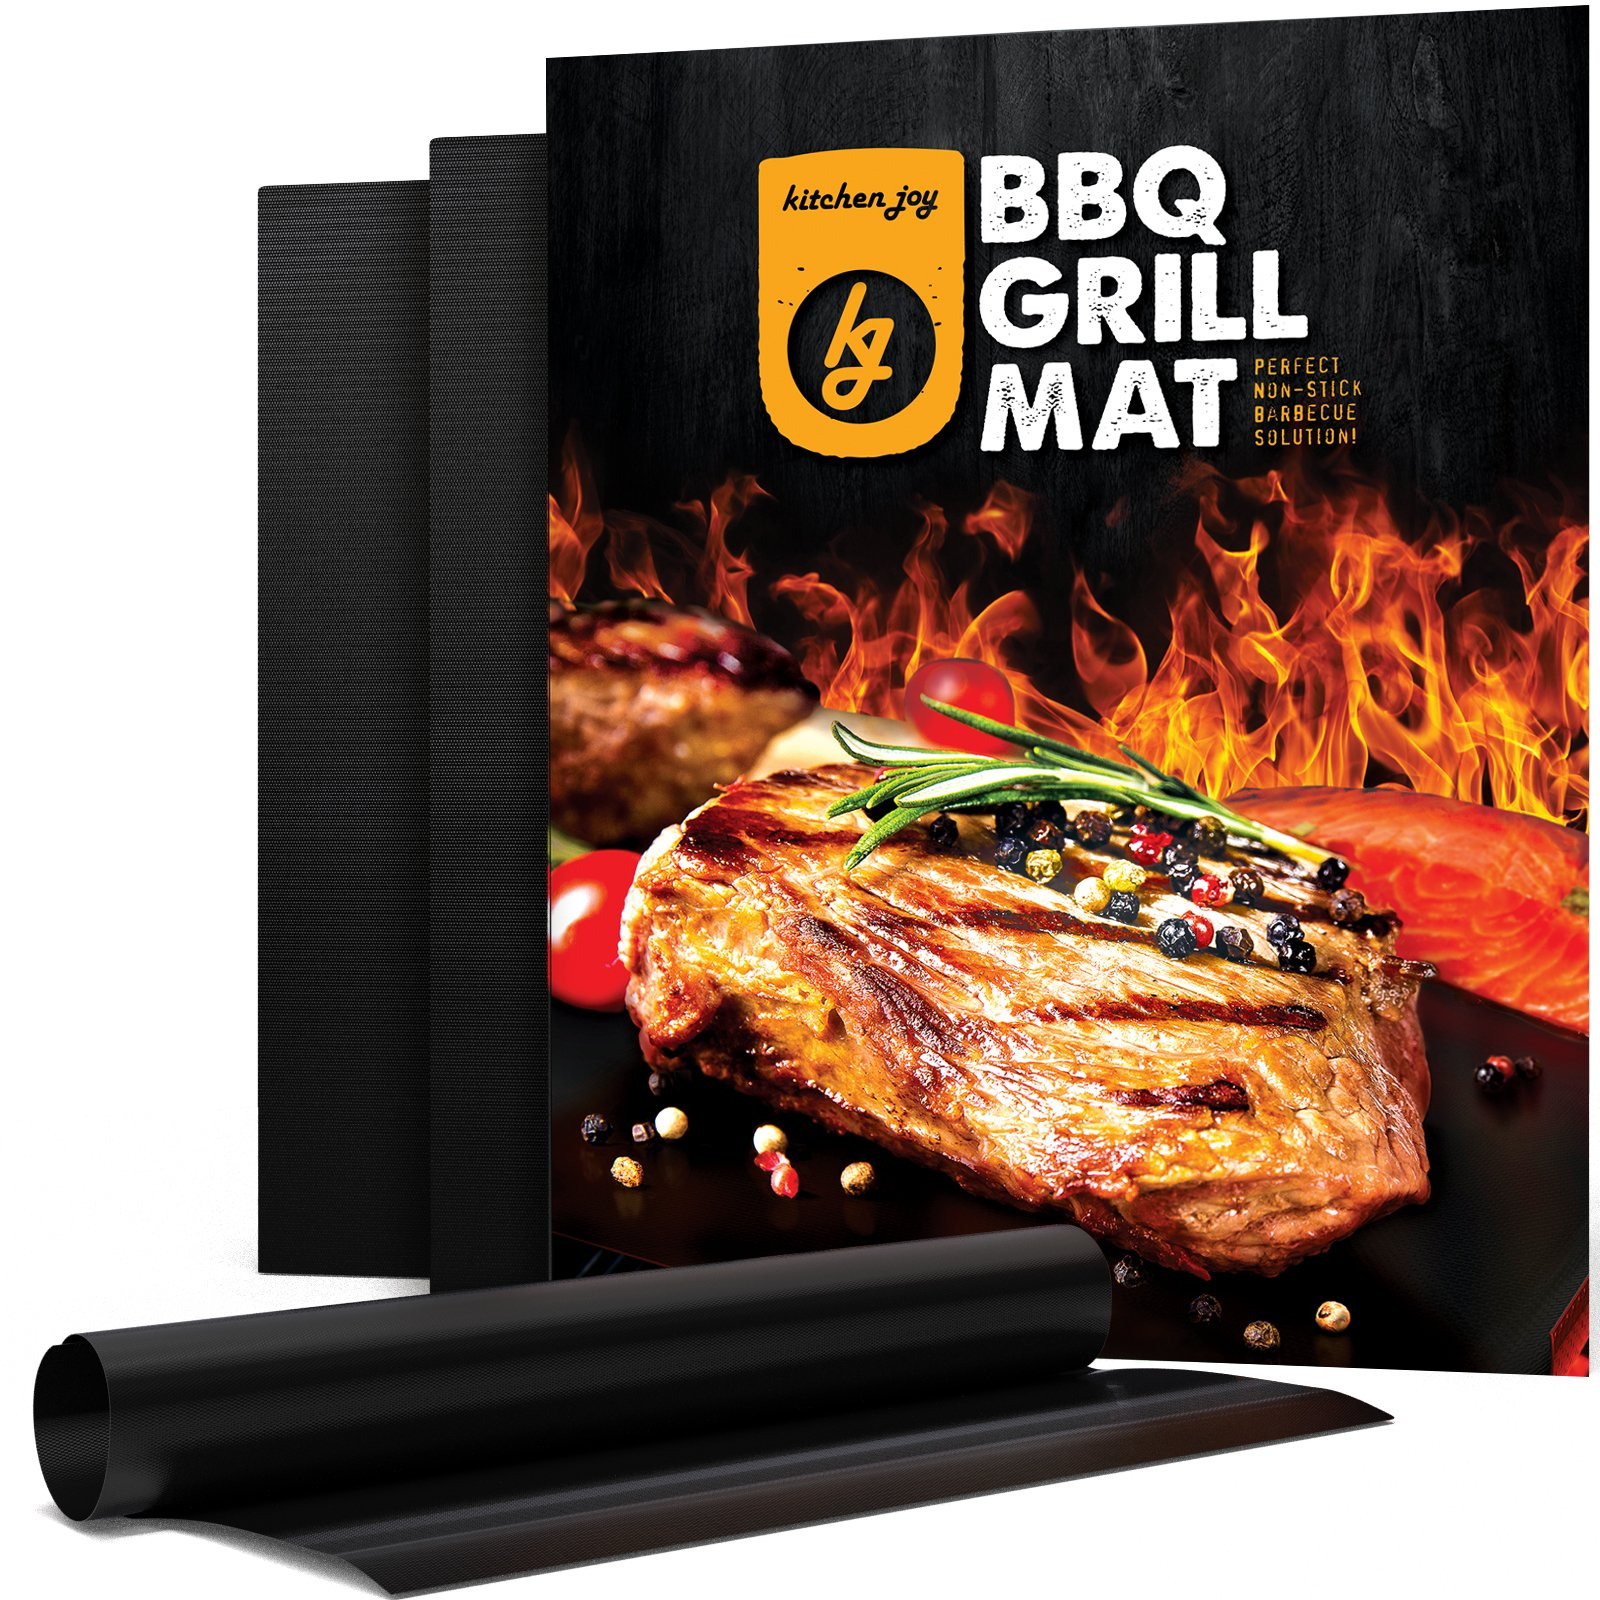 Kitchen Joy BBQ Grill Mat, Set of 3 Non-Stick, Fireproof Grill Sheets, Barbecue Accessory for Gas, Charcoal, Electric Grills. Easy to Clean Barbque Grill Accessories/Grill Grease Tray by Kitchen Joy